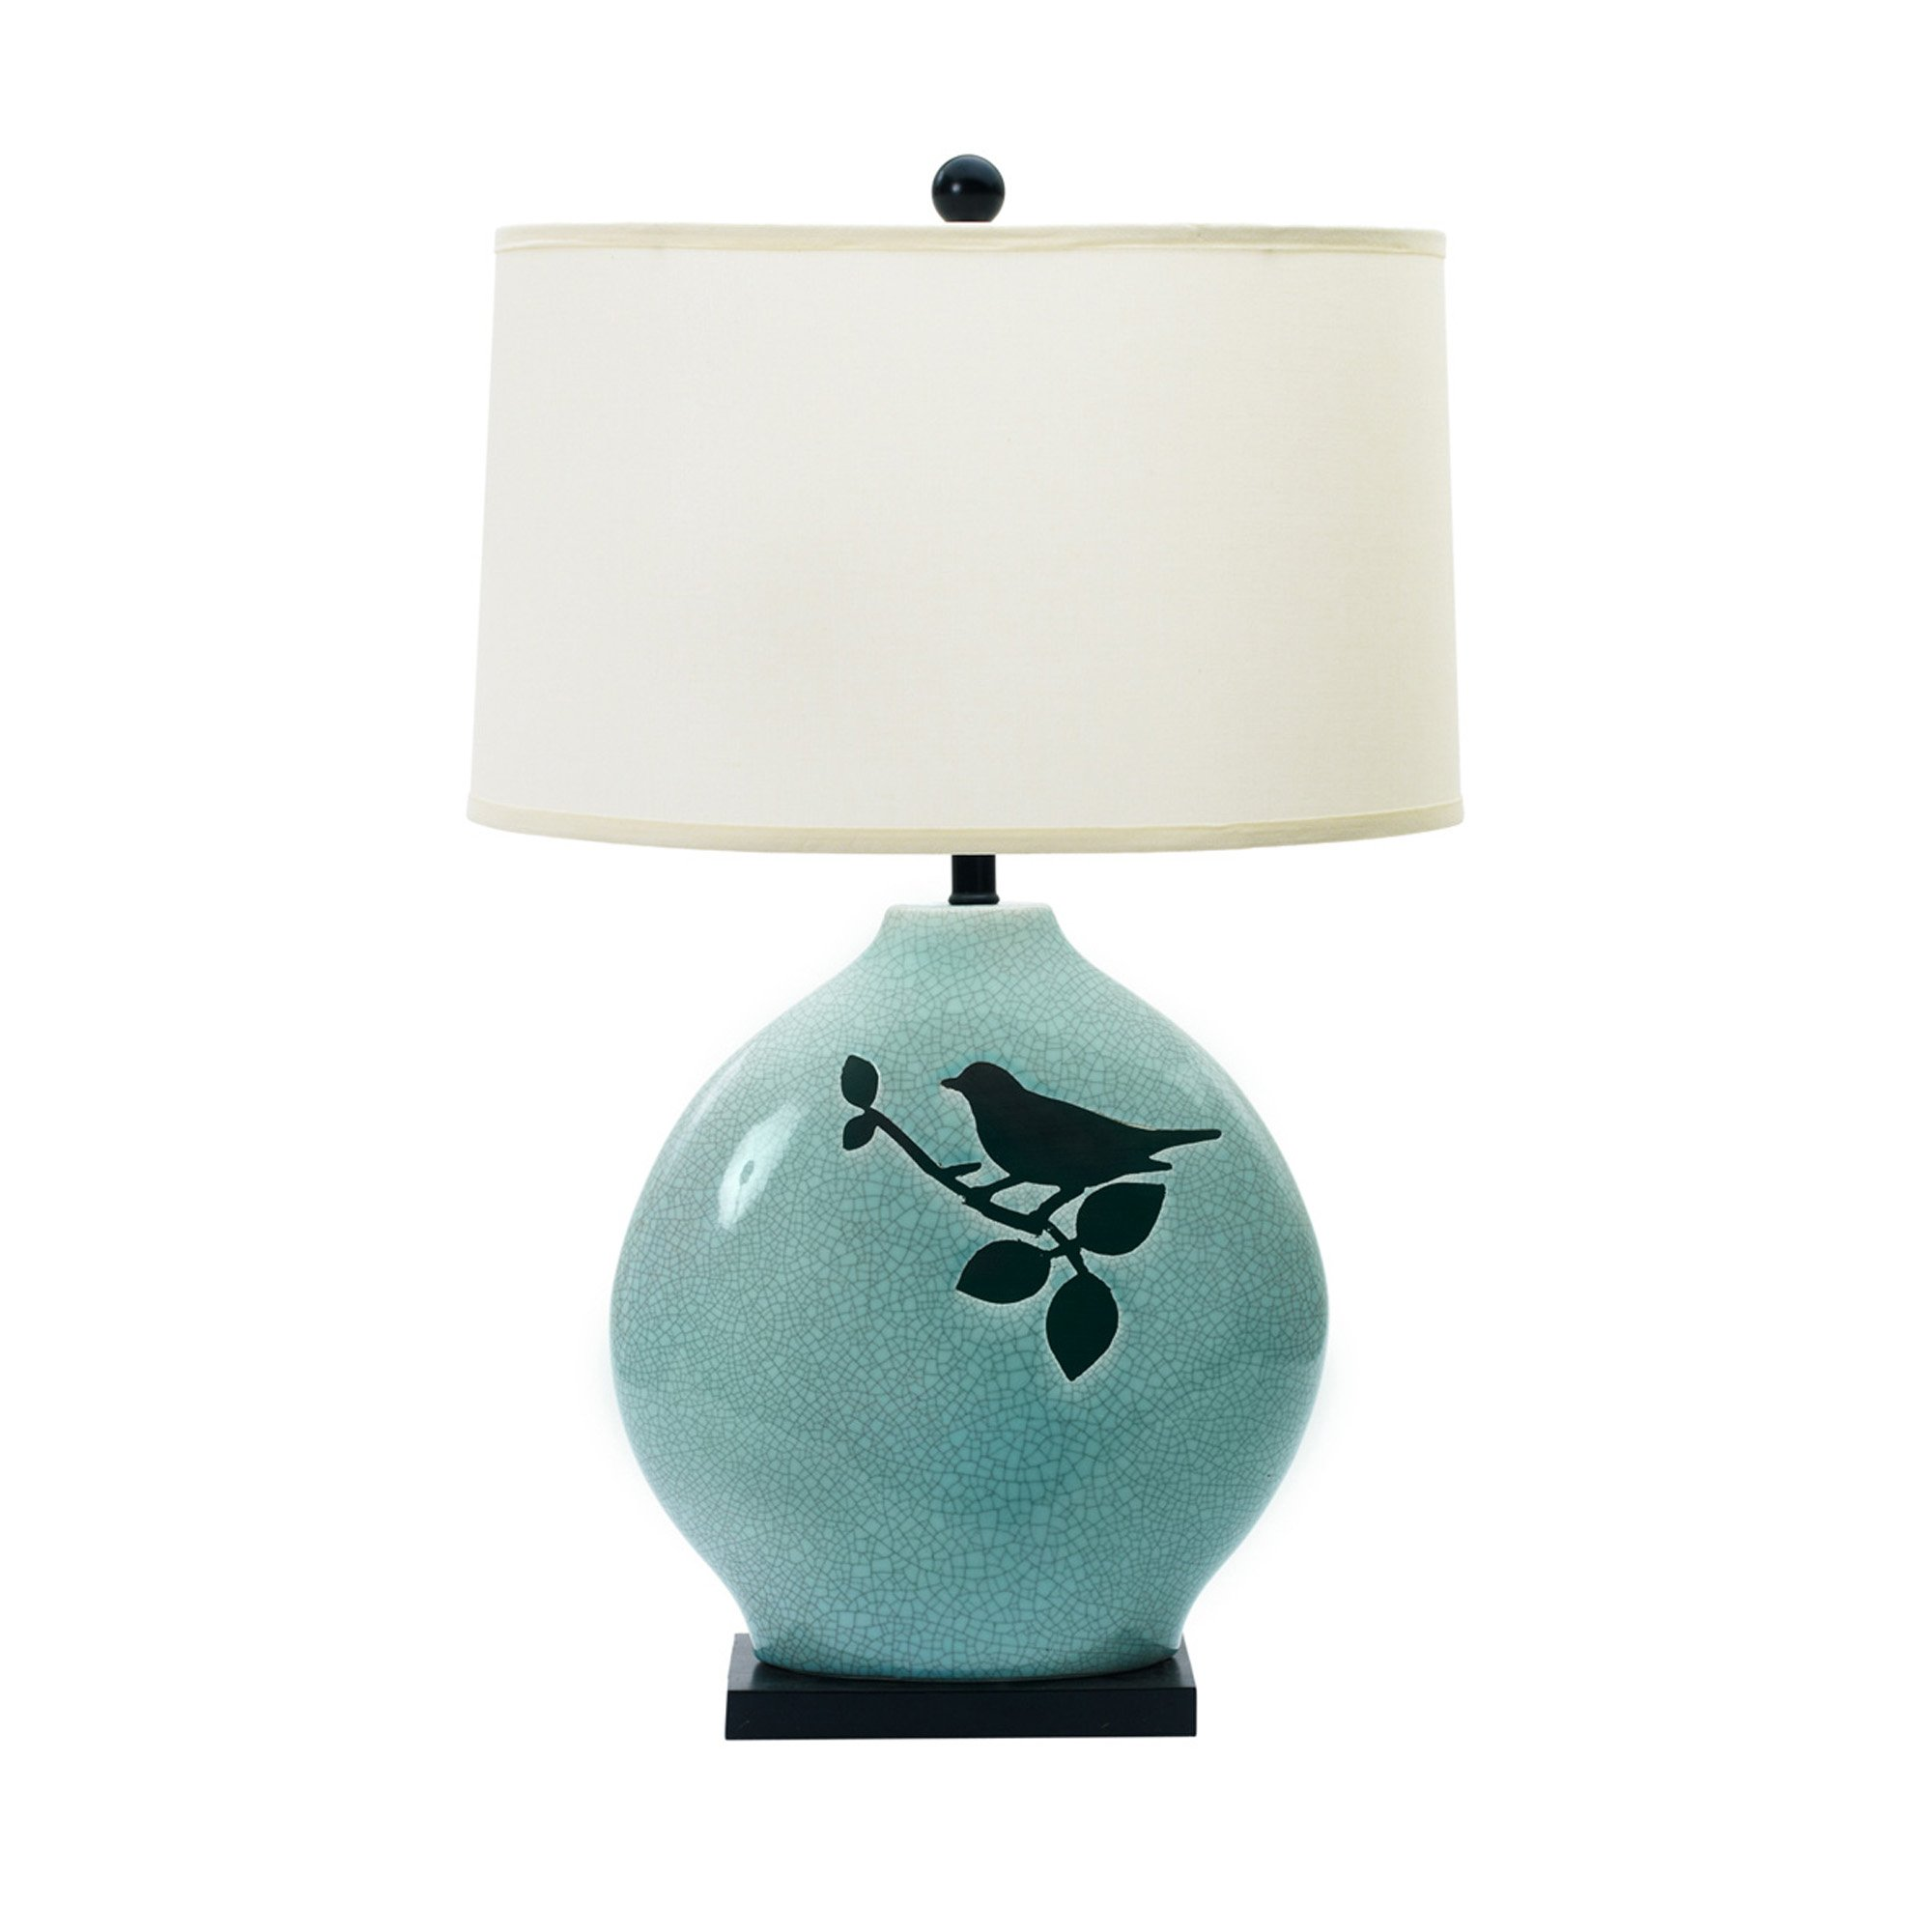 Fangio Lighting 8783 Traditional Ceramic Table Lamp with Bird and Black Base, 30-Inch, Spa Blue Crackle